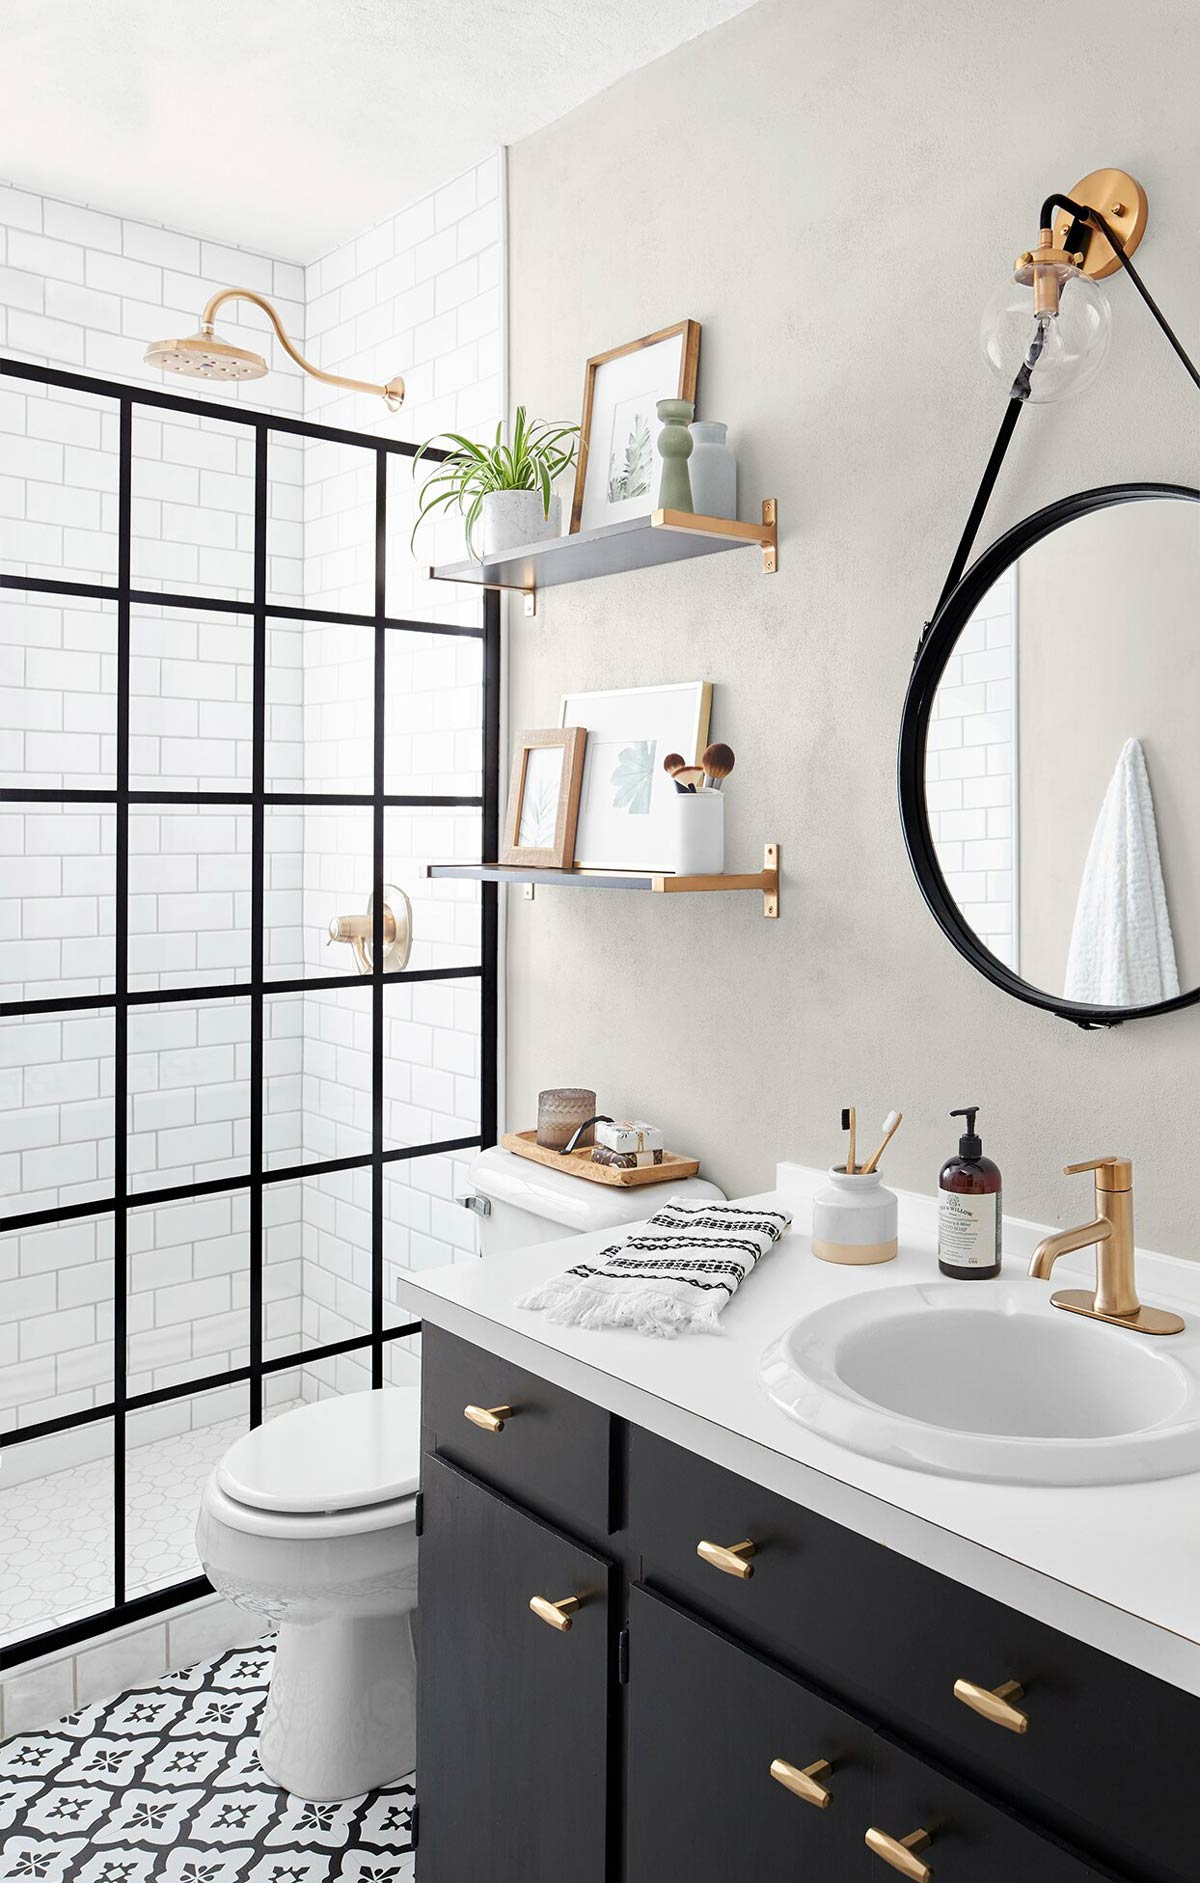 10 Pretty Diy Small Bathroom Makeovers Budget Ideas Ohmeohmy Blog